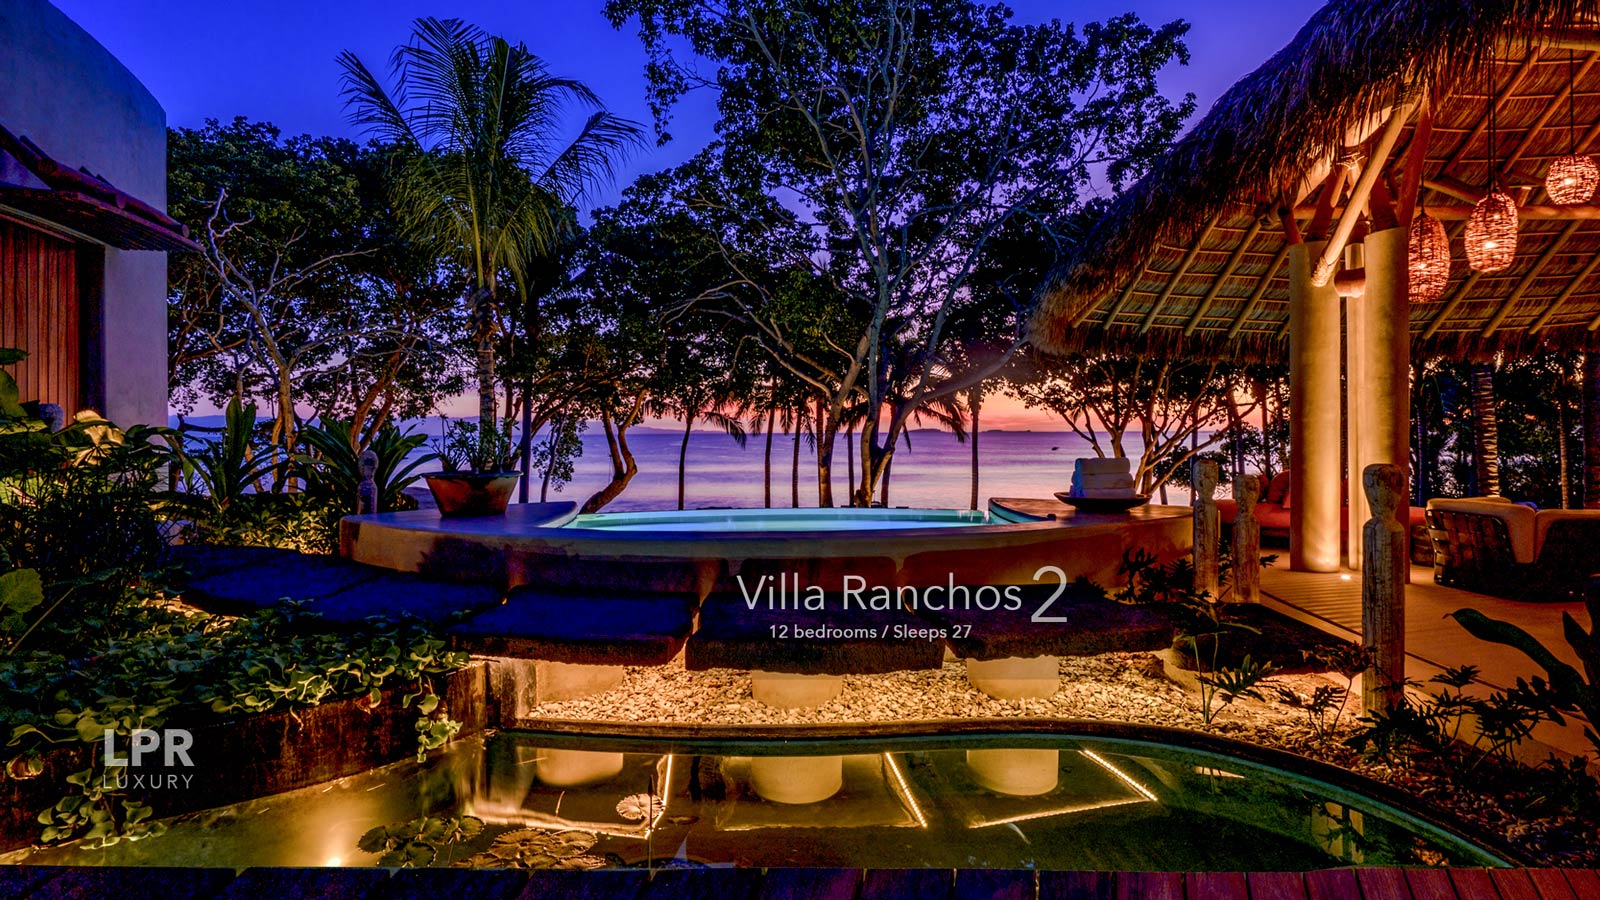 Villa Ranchos 2 - Ultra luxury 12 bedroom estate on sandy and exclusive Ranchos beach at the Punta Mita Resort, Riviera Nayarit, Mexico